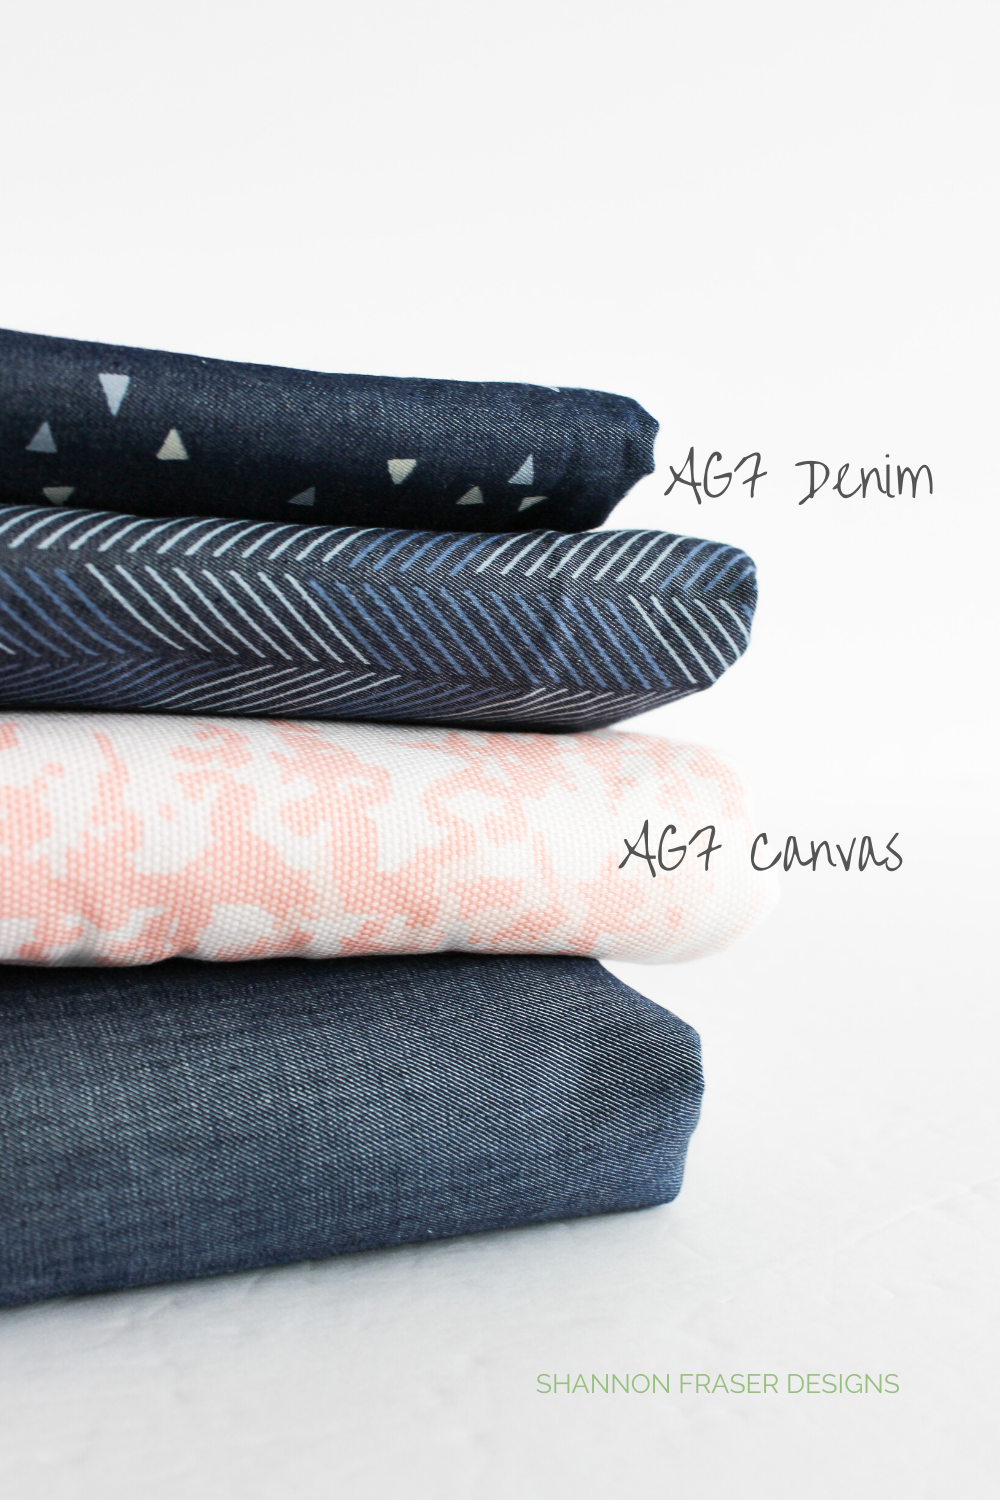 Stack of Art Gallery Fabric Denim + AGF Canvas in pink trees